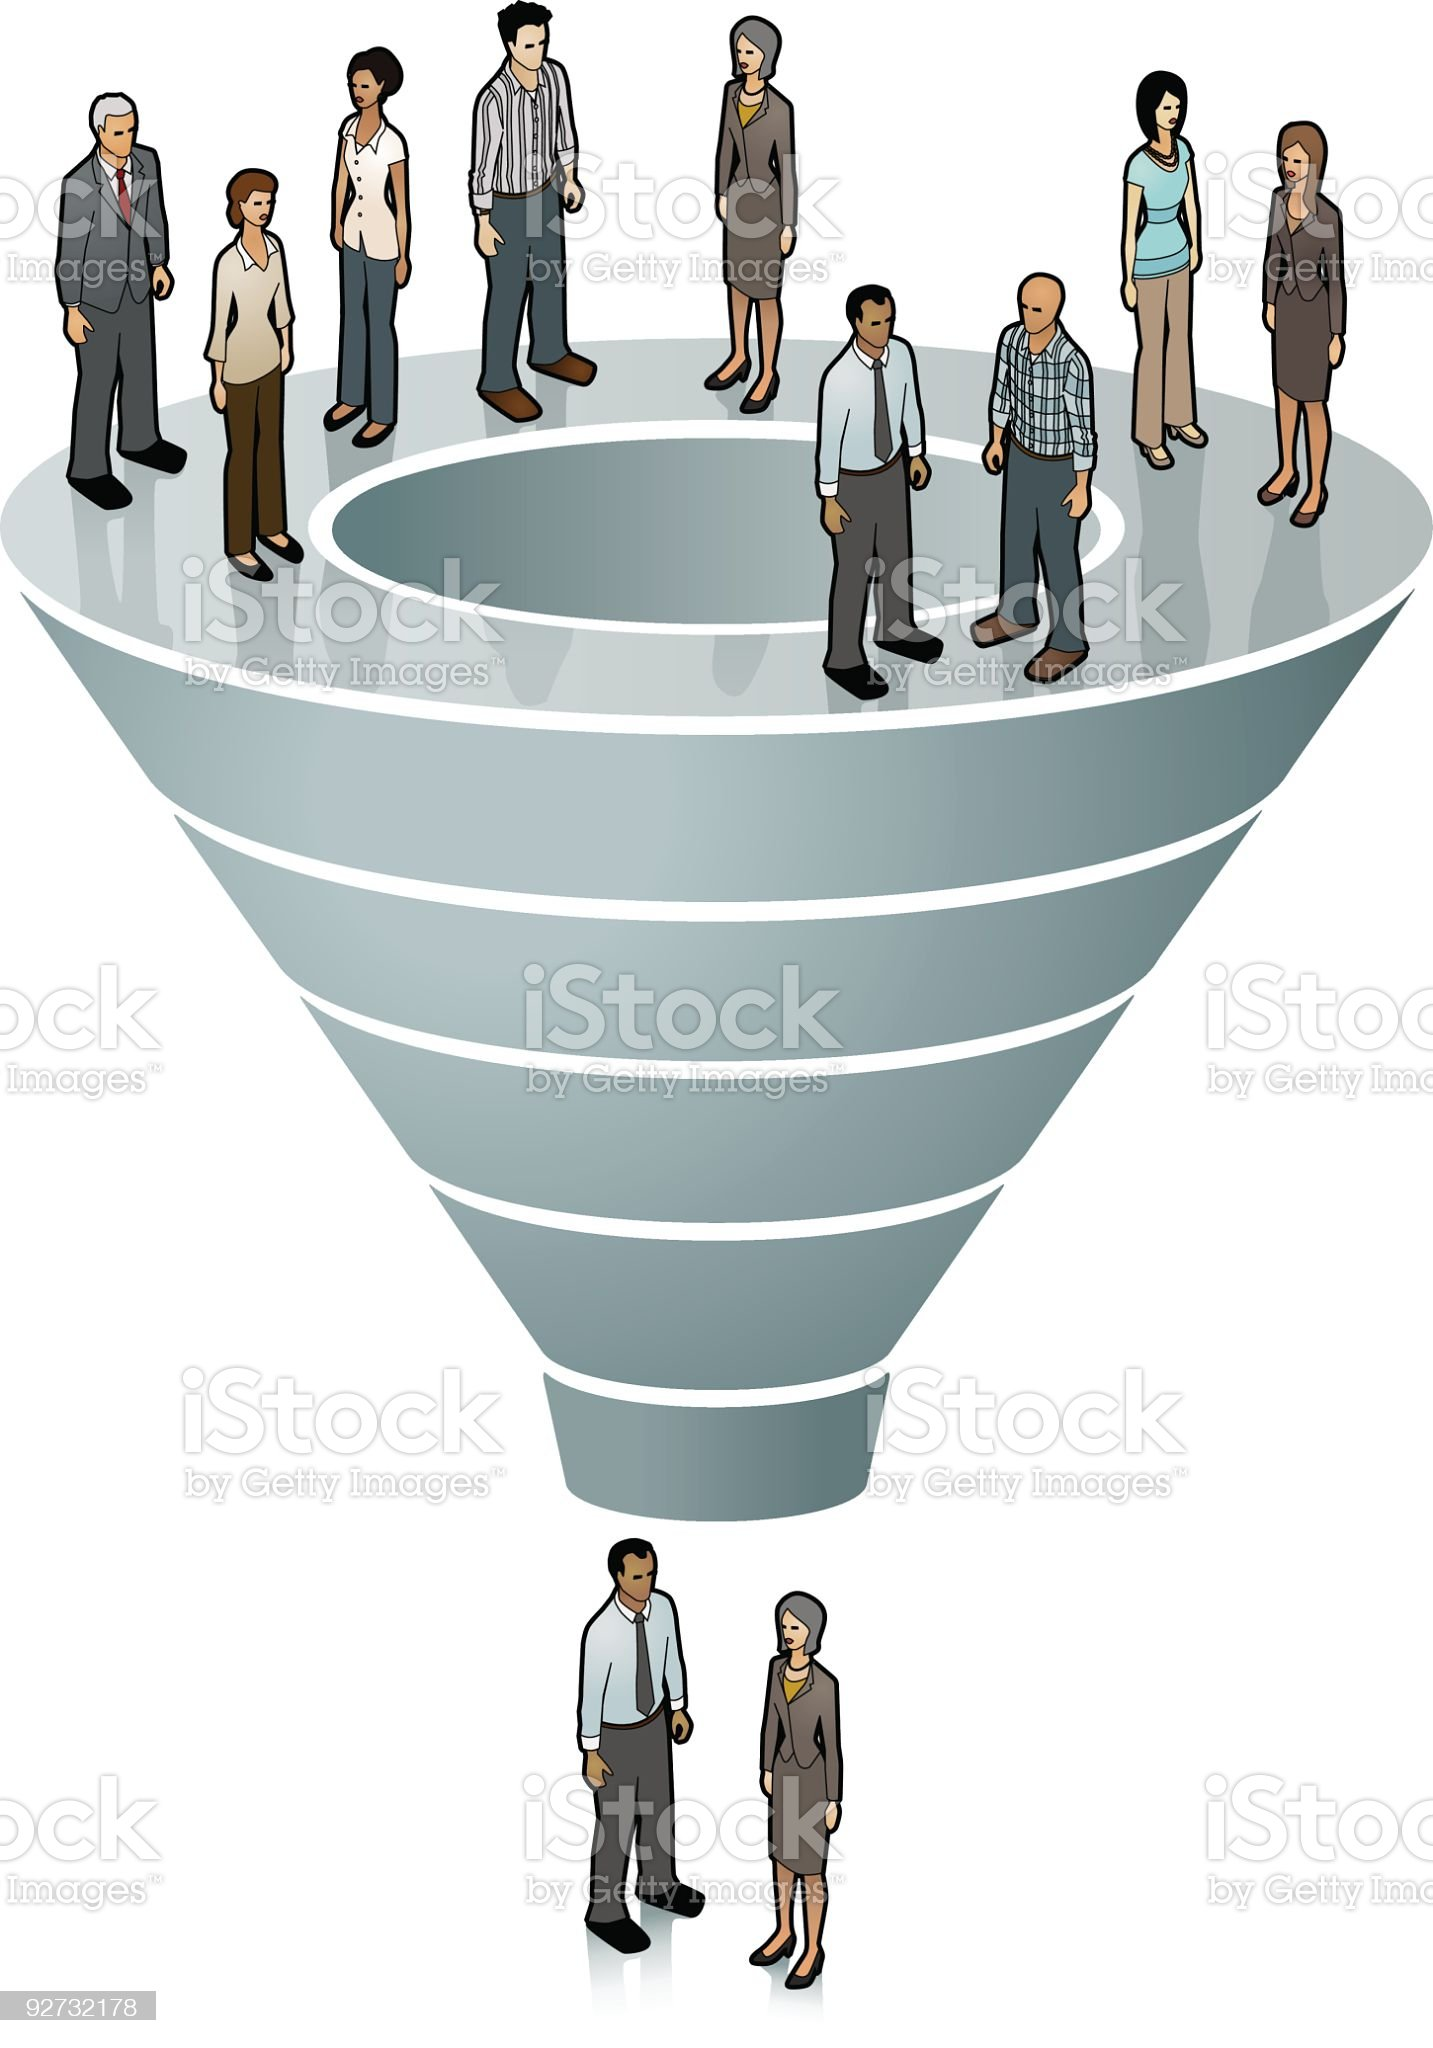 Sales Funnel Image royalty-free stock vector art